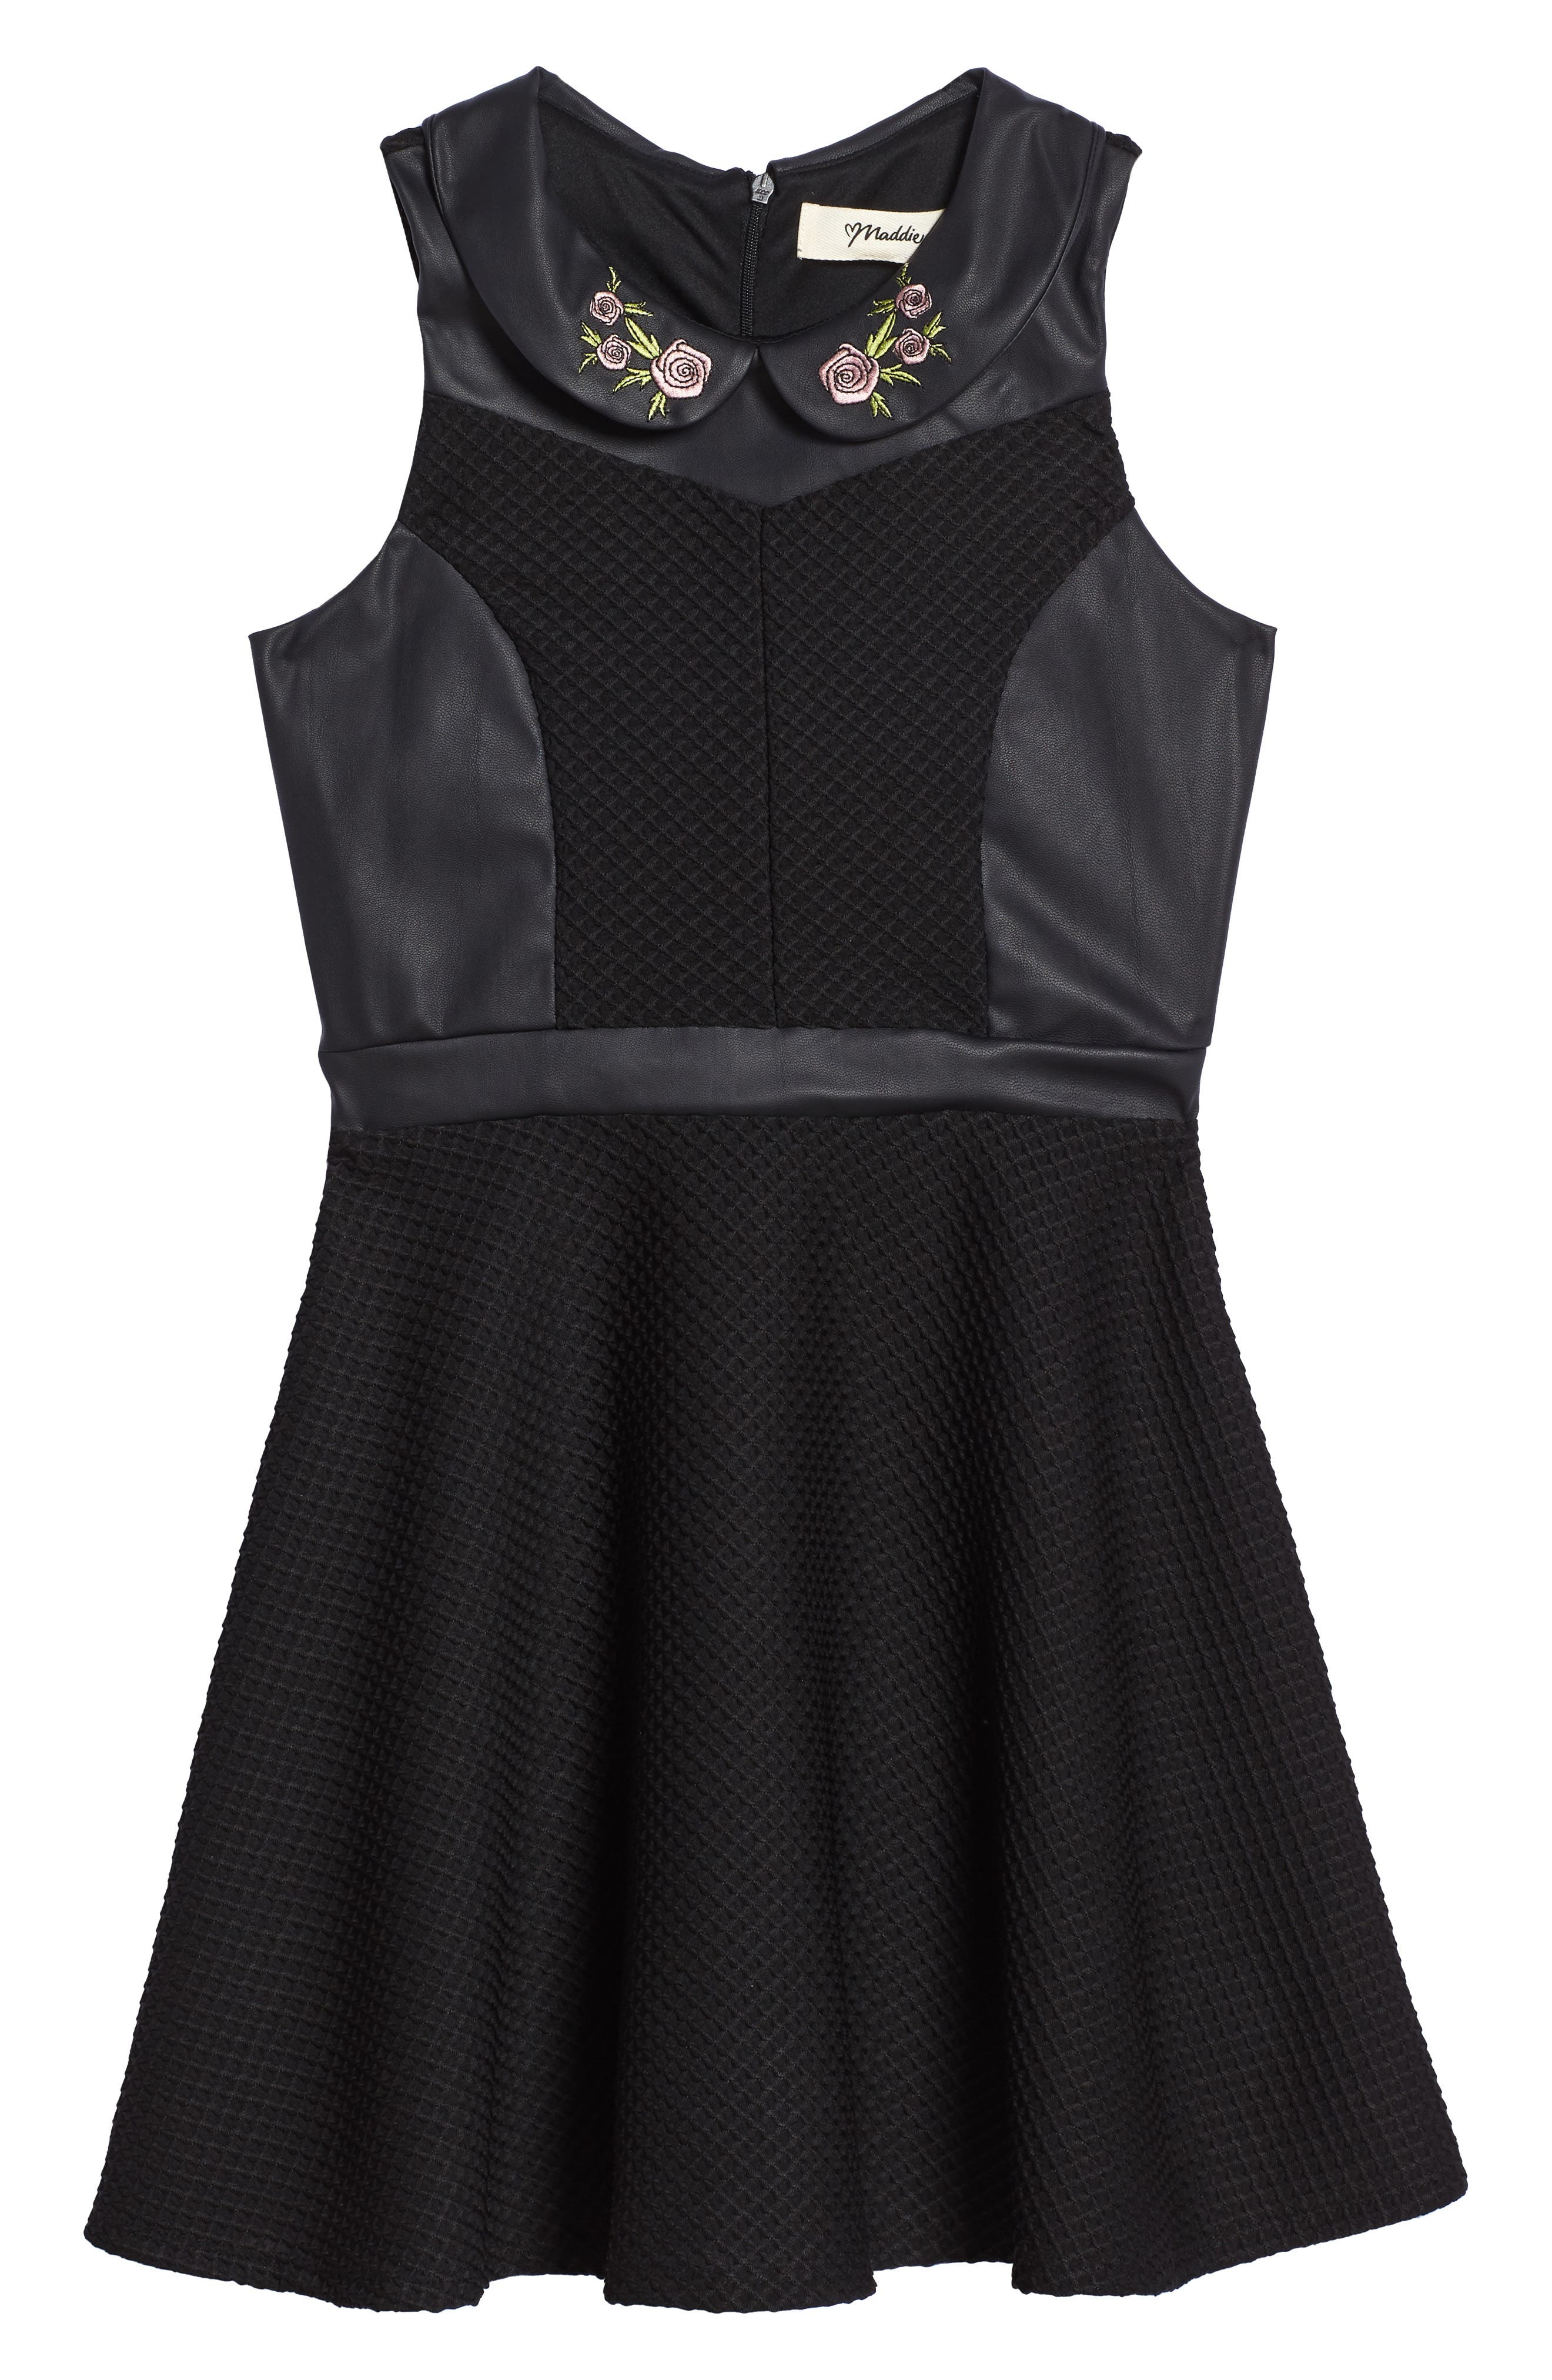 Maddie Faux Leather Skater Dress (Big Girls)